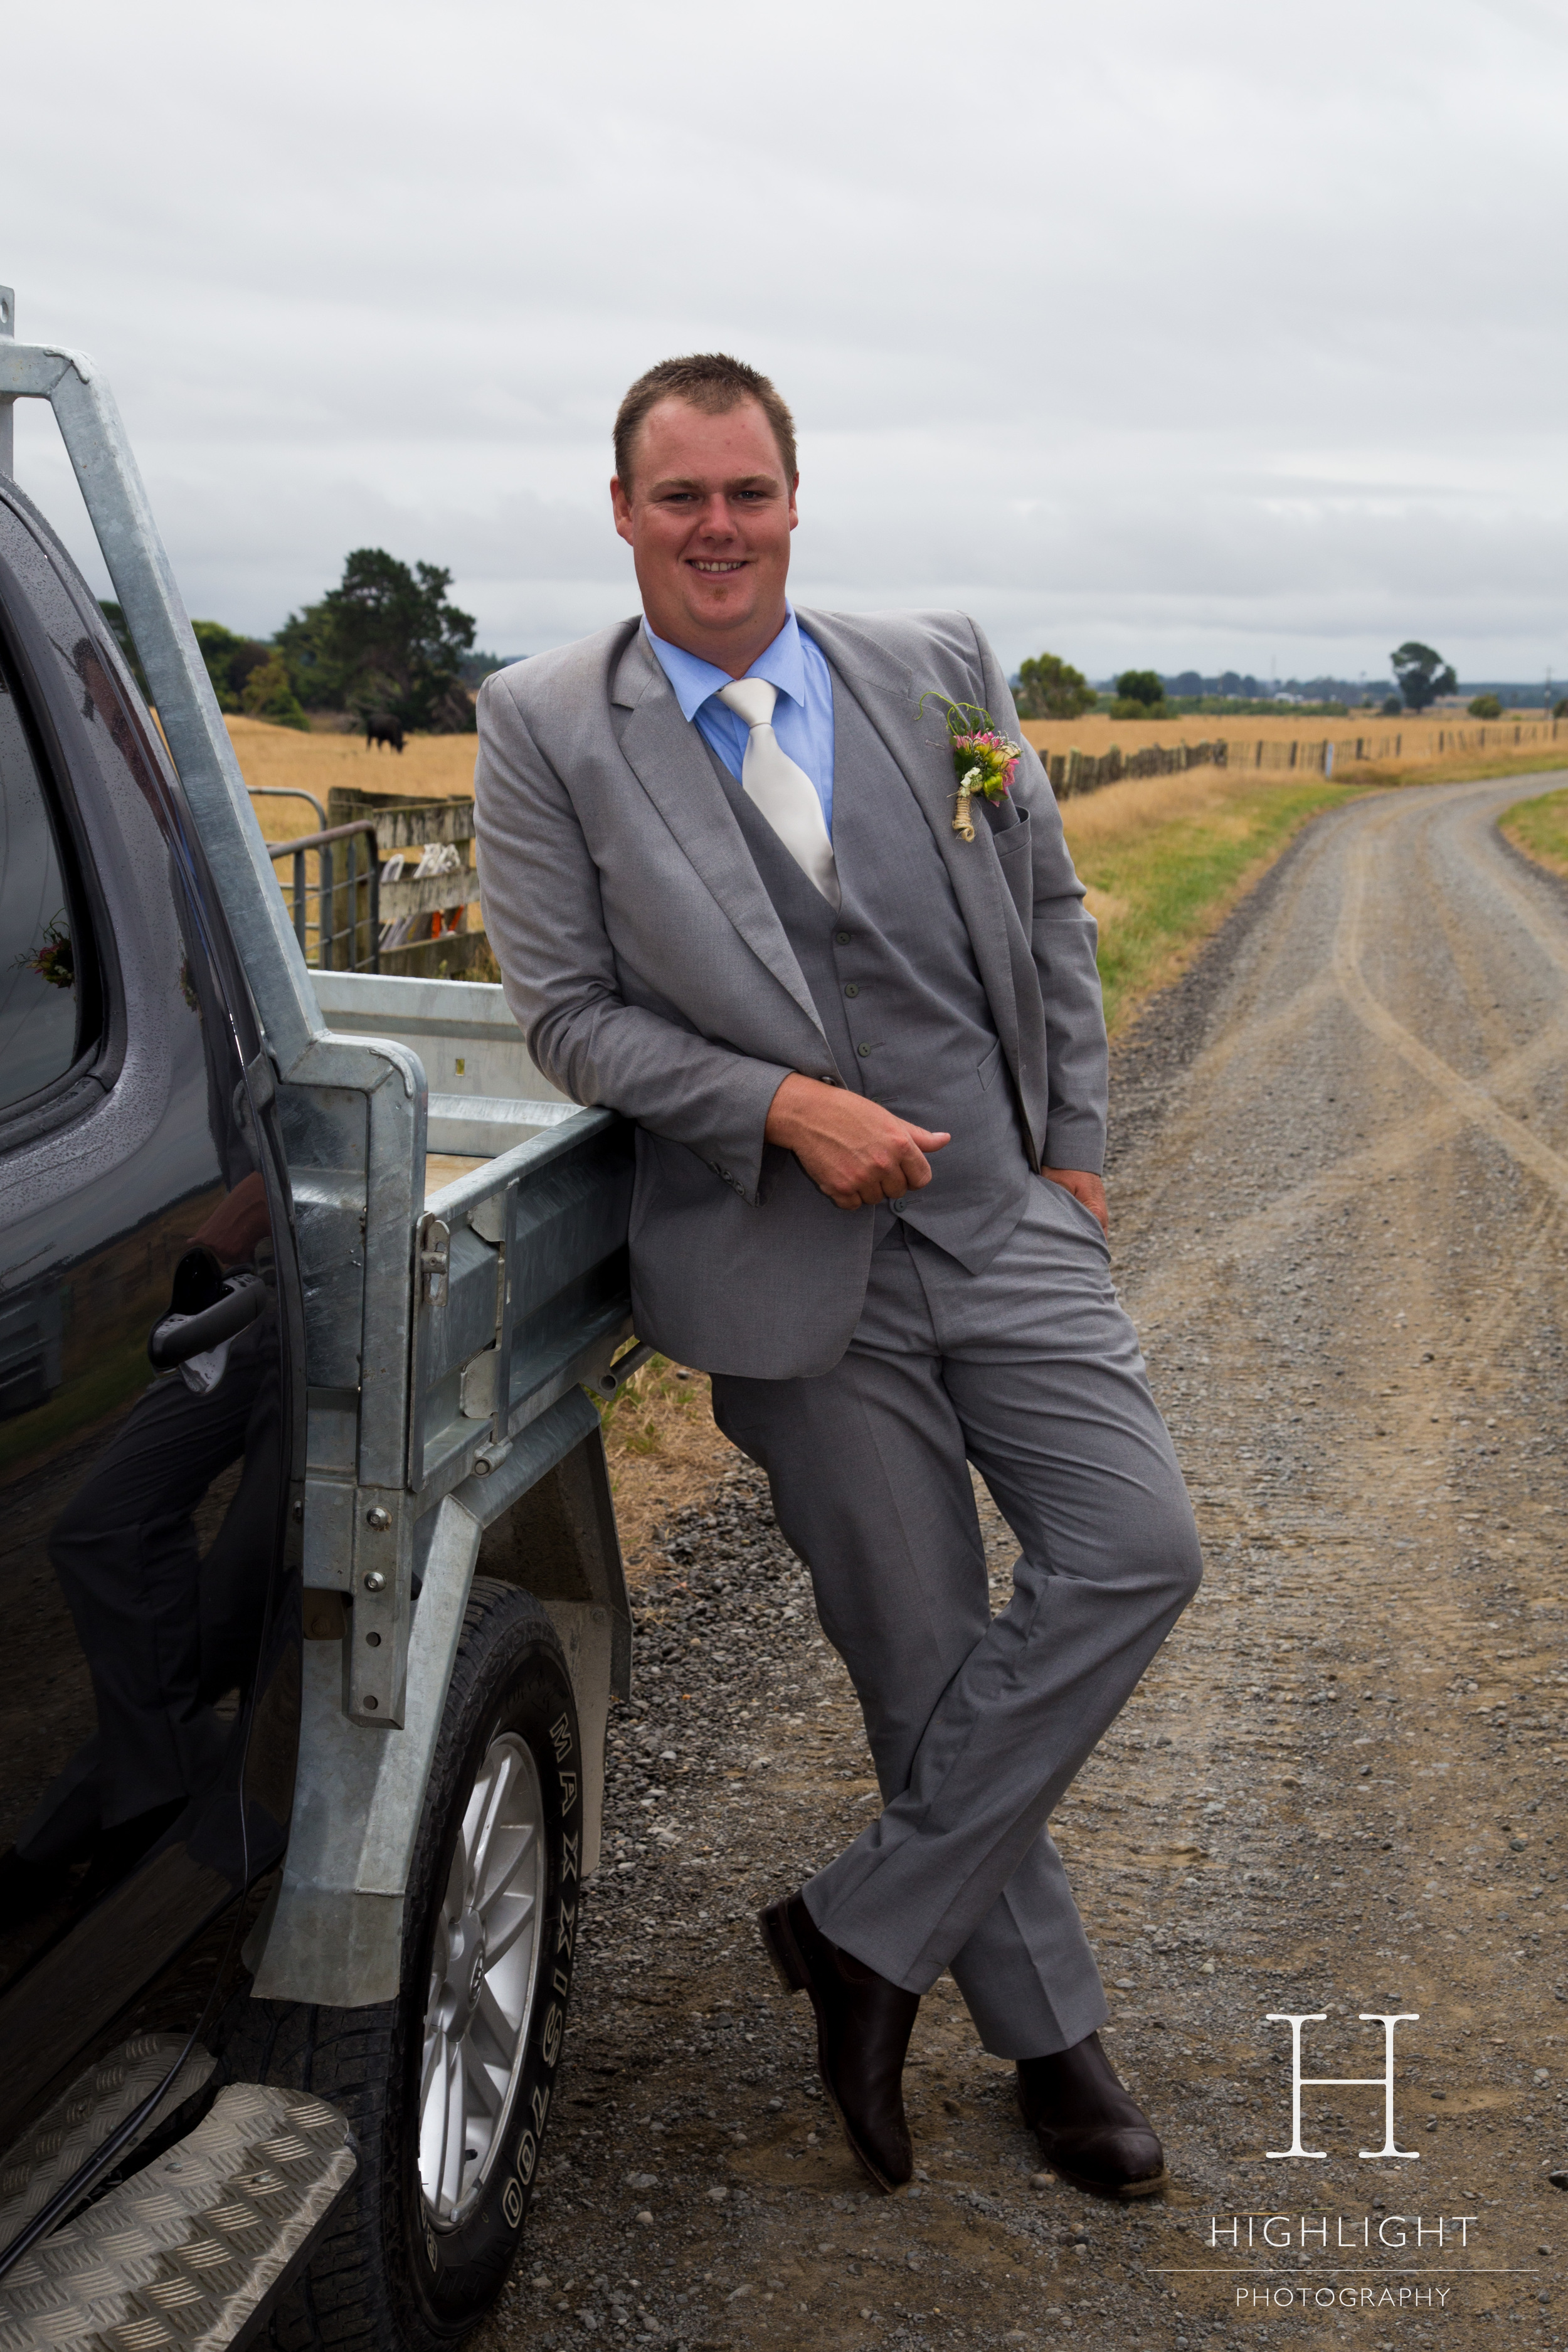 highlight_wedding_photography_palmerston_north.jpg